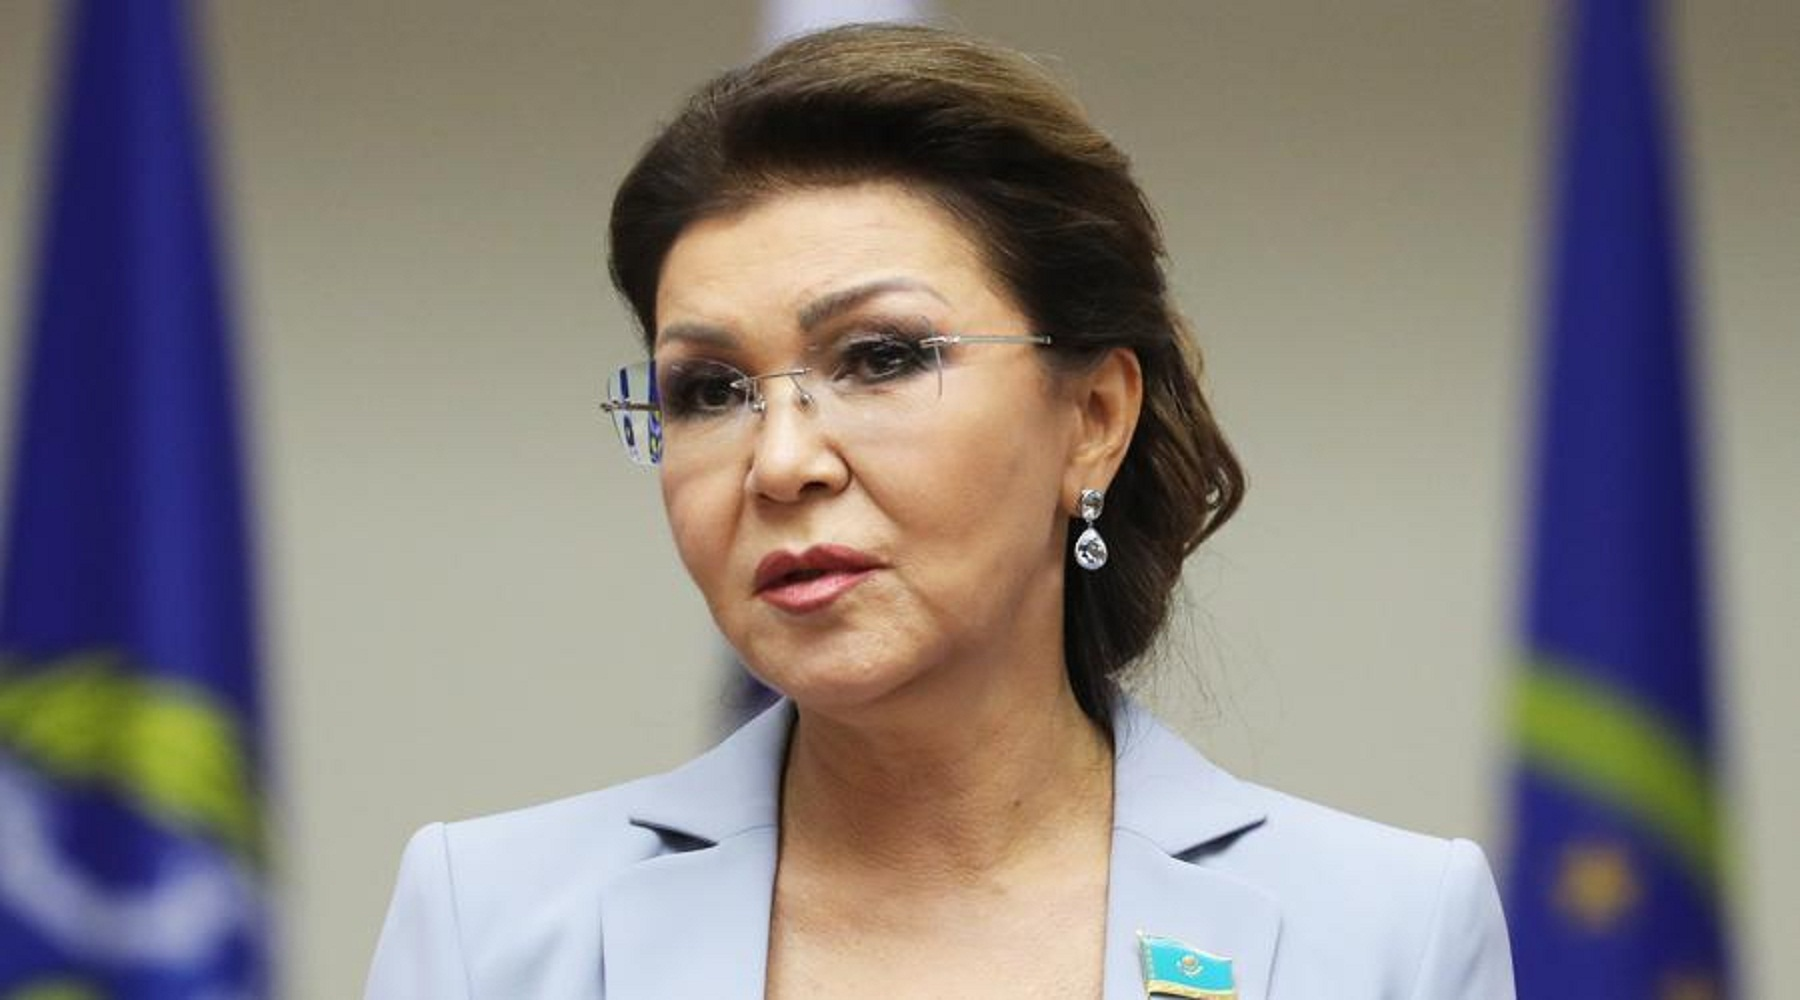 President of Kazakhstan Kassym-Jomart Tokayev signed a decree on the termination of the powers of the Deputy of the Senate Dariga Nazarbayeva.